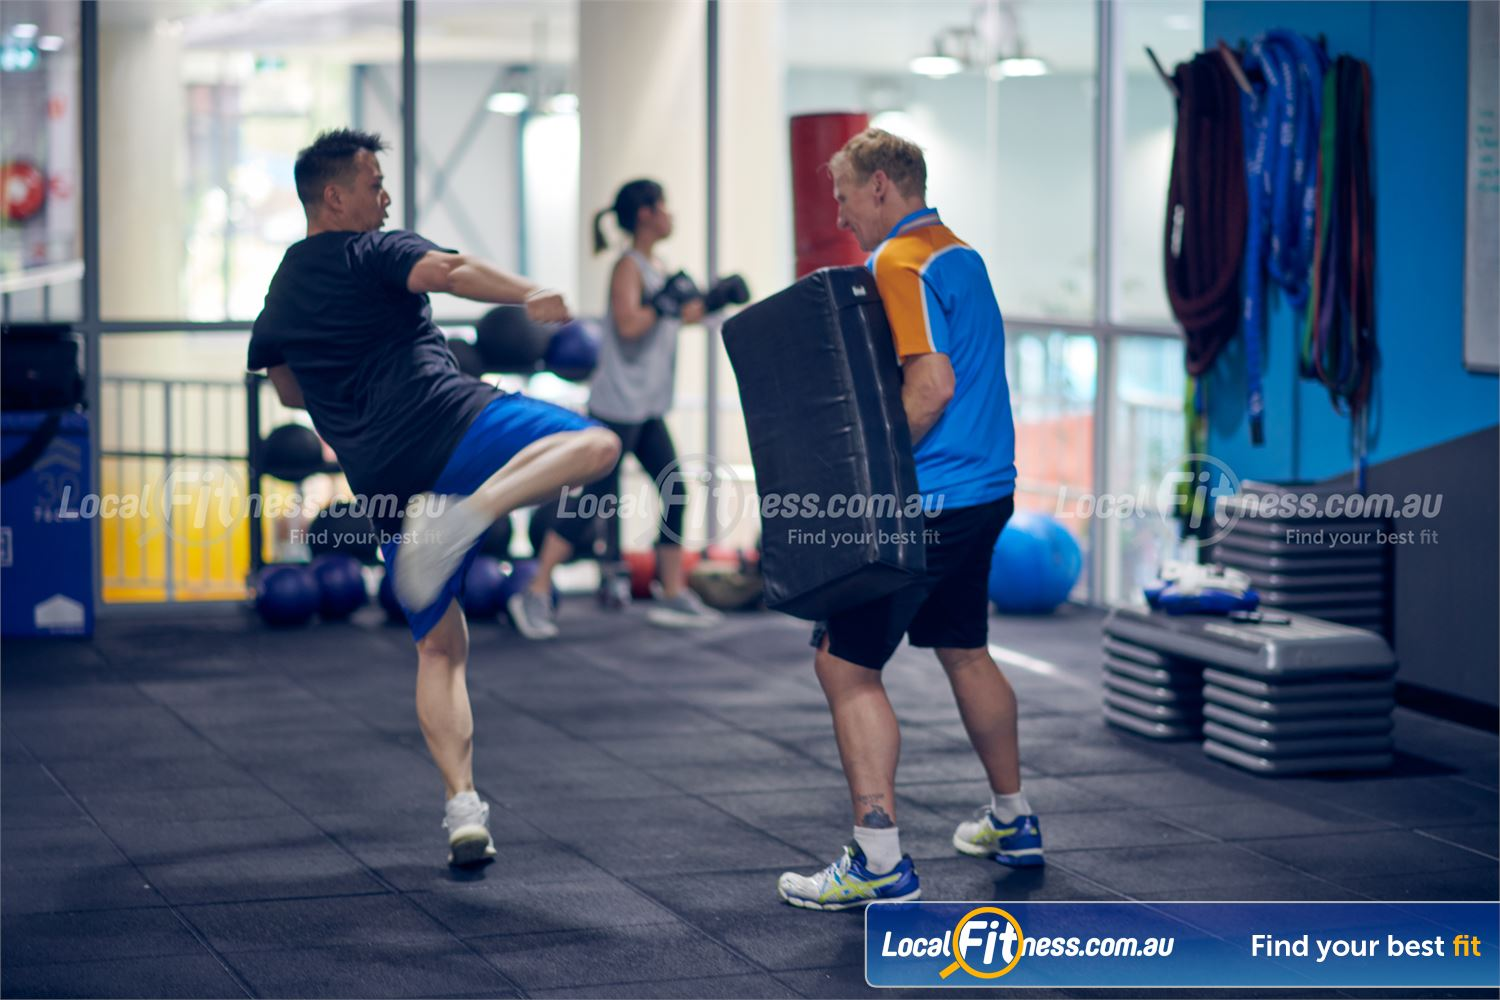 Knox Leisureworks Near Ferntree Gully Challenge your fitness with our range of Boronia HIIT gym classes.